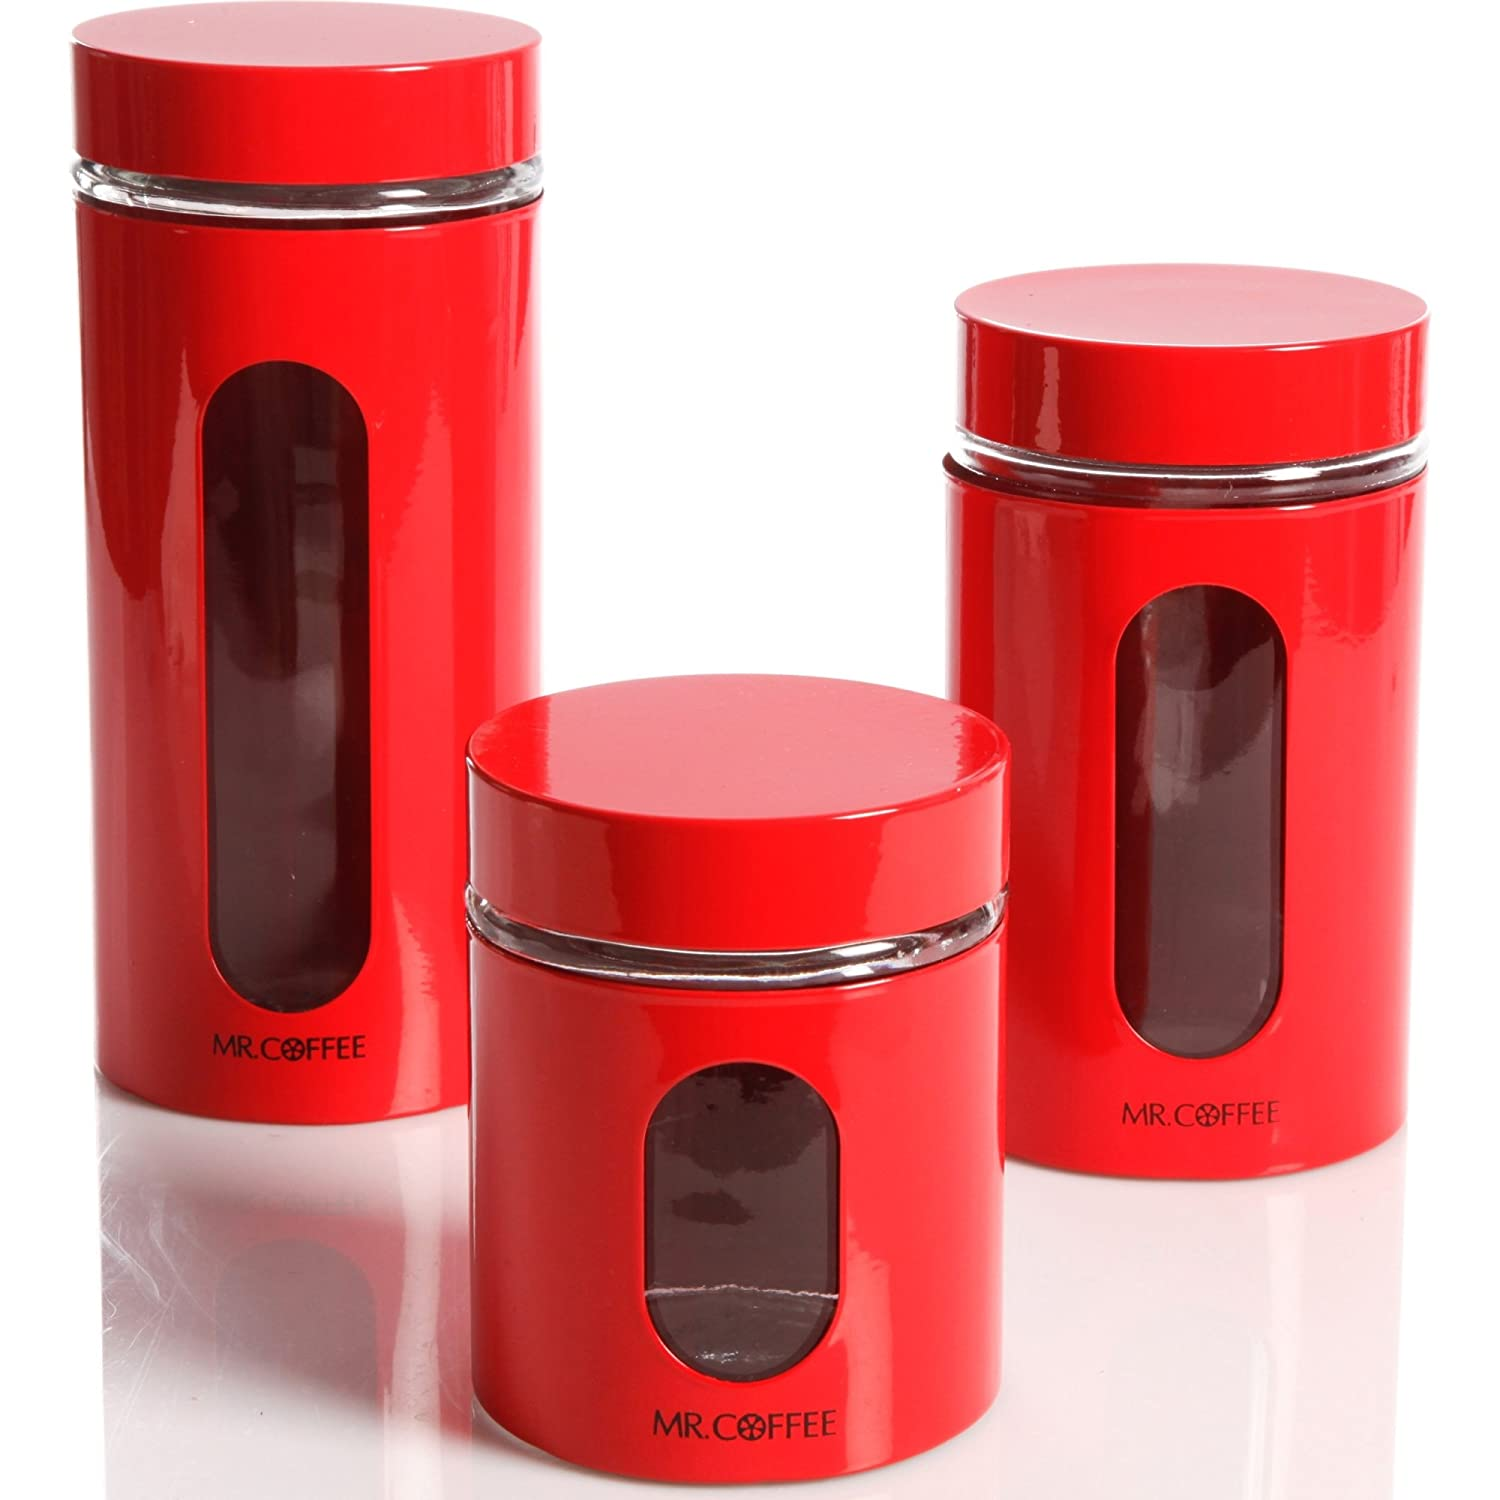 amazon com kitchen food storage glass canister mr coffee java bar amazon com kitchen food storage glass canister mr coffee java bar by gibson 3 piece set red kitchen dining